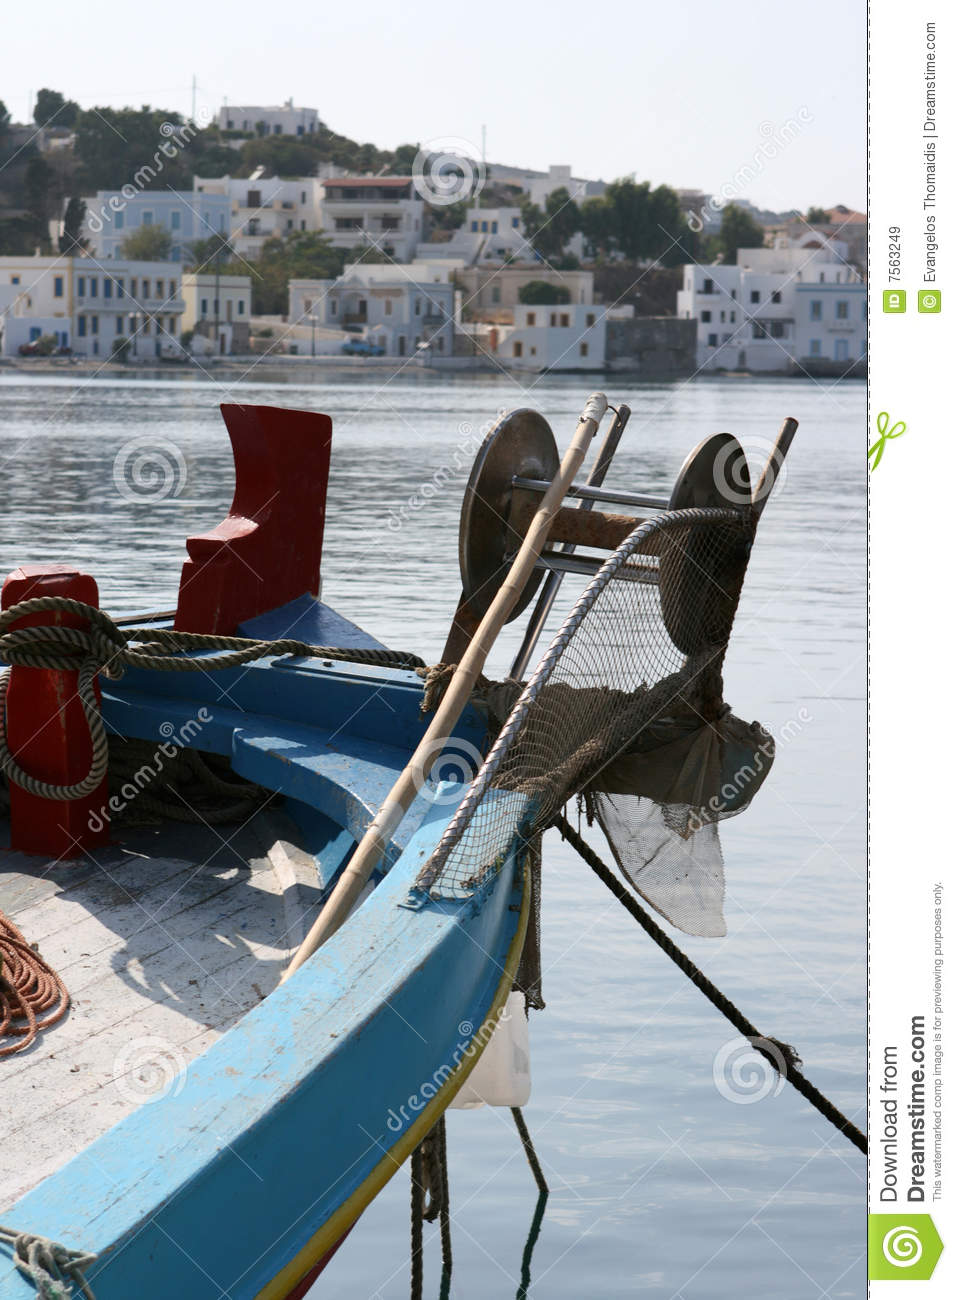 Fishing boat front royalty free stock images image 7563249 for How to not get seasick on a fishing boat